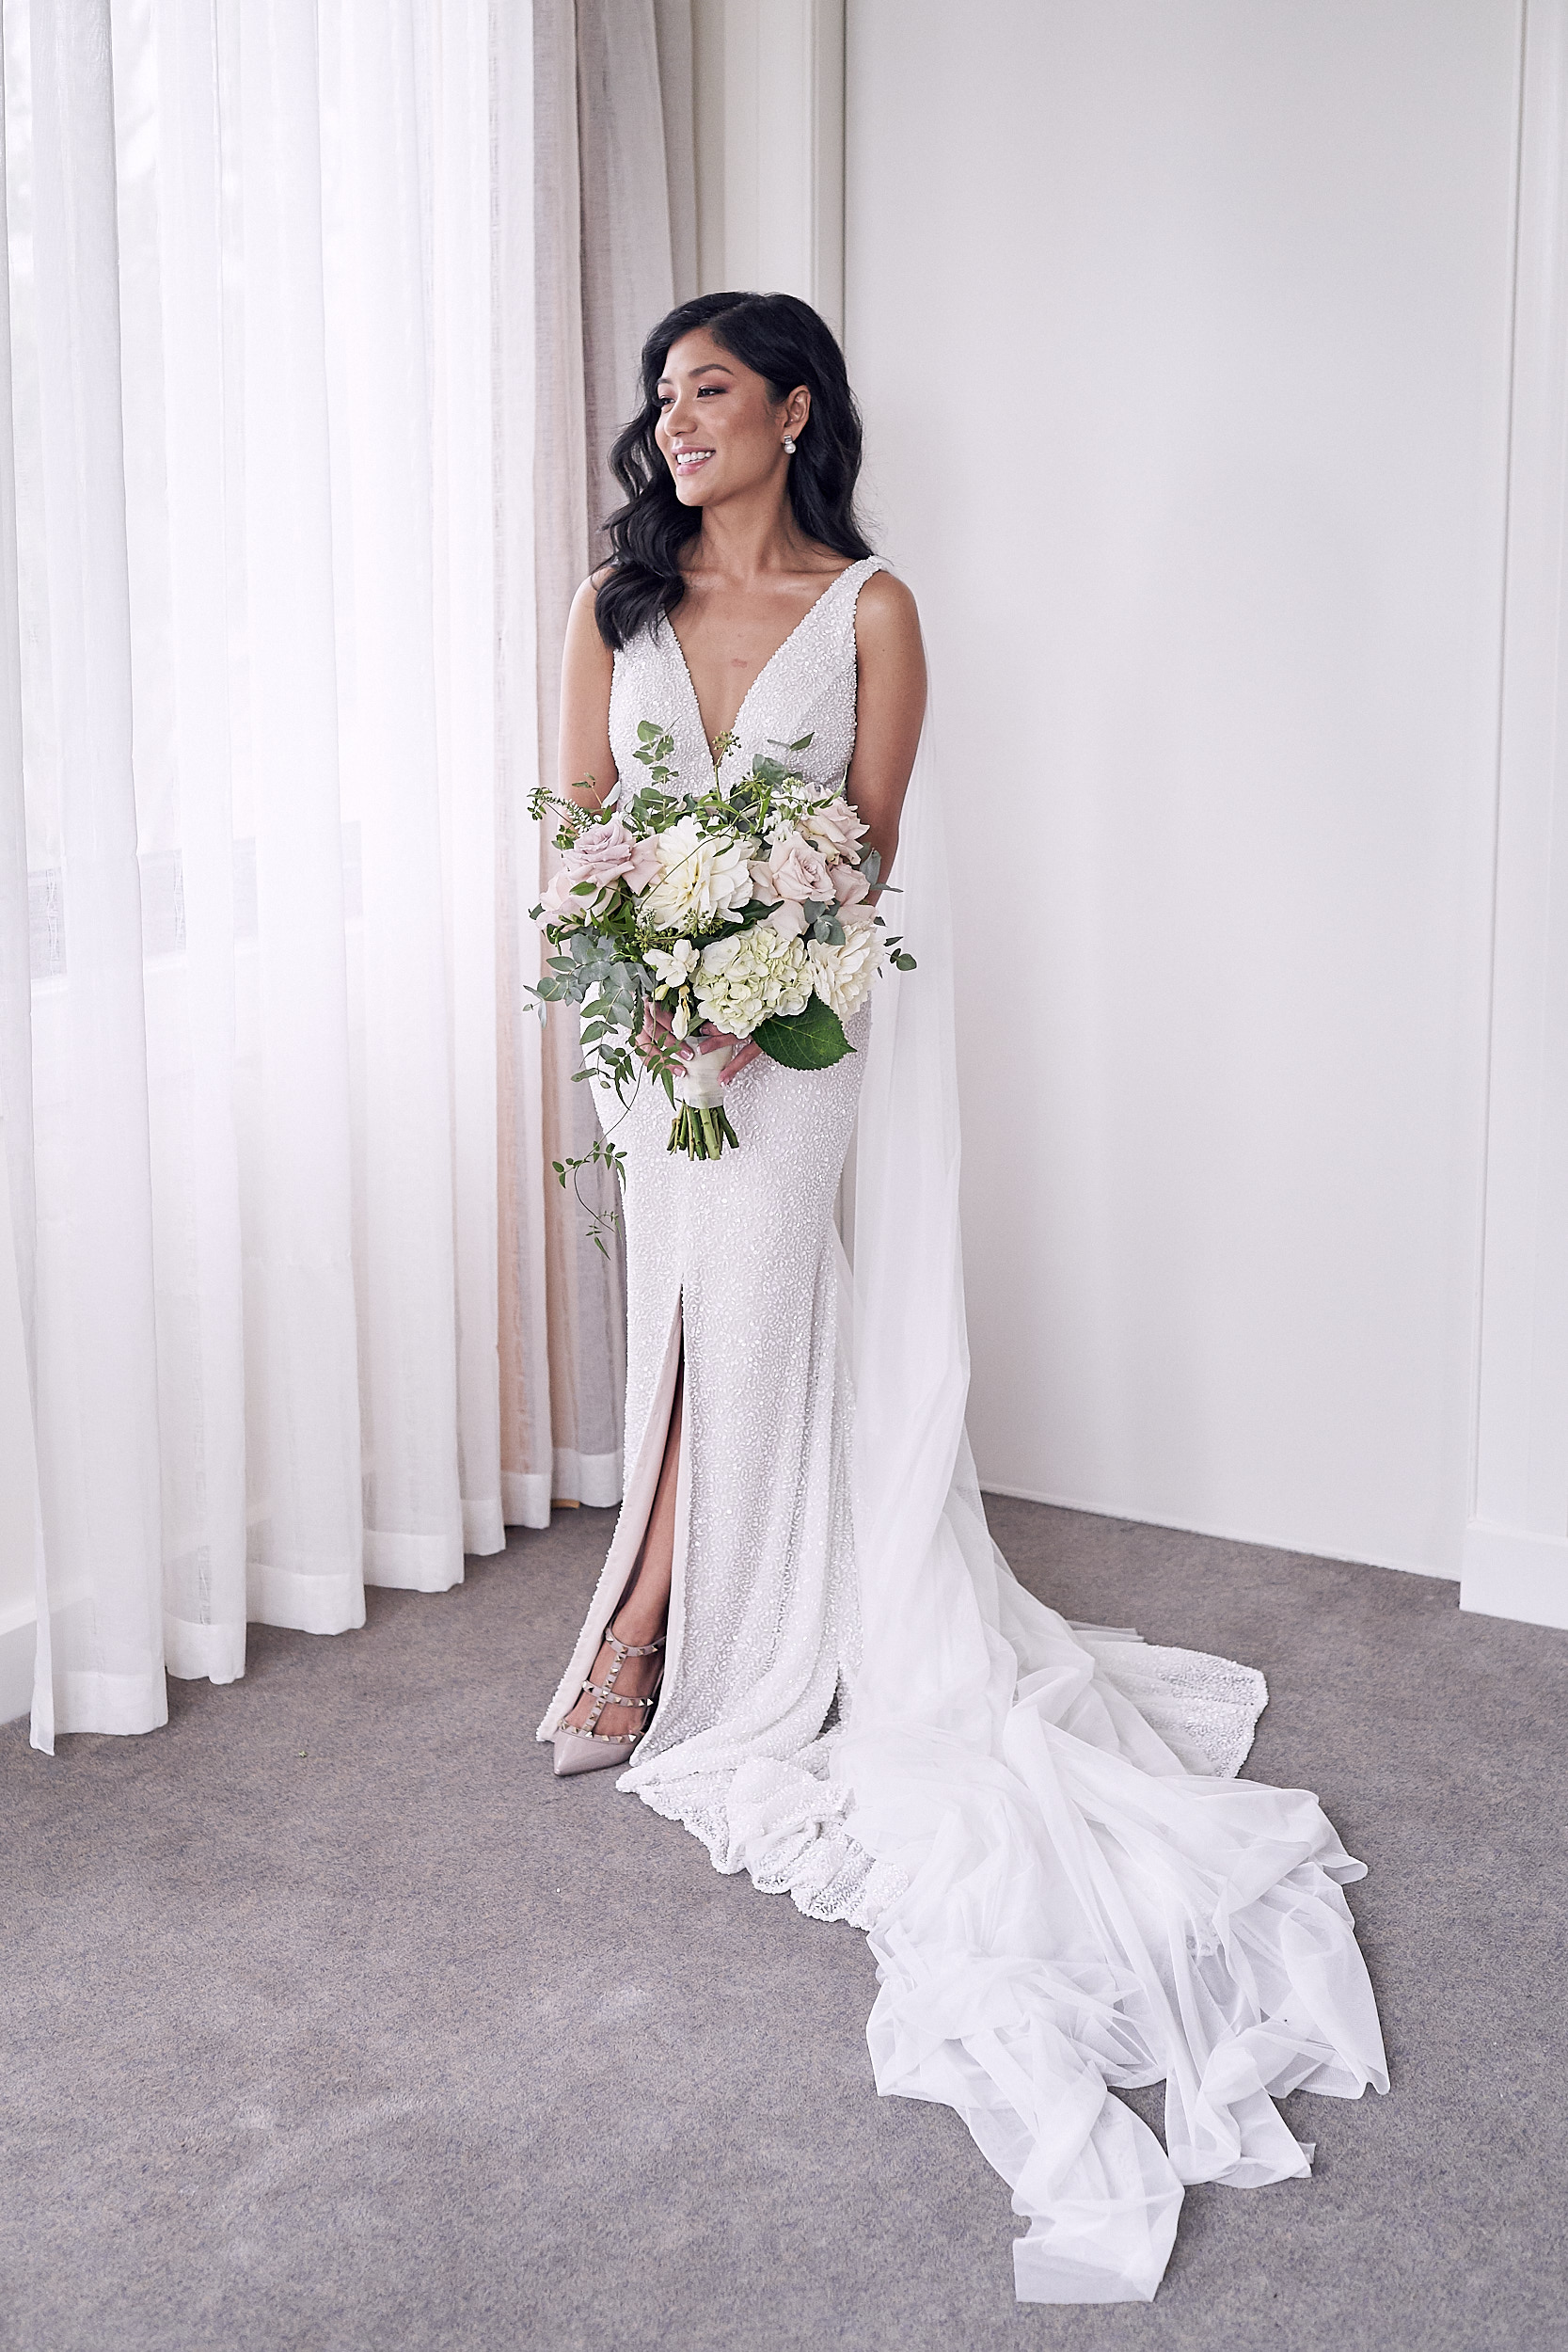 simple wedding dress by Mariana Hardwick